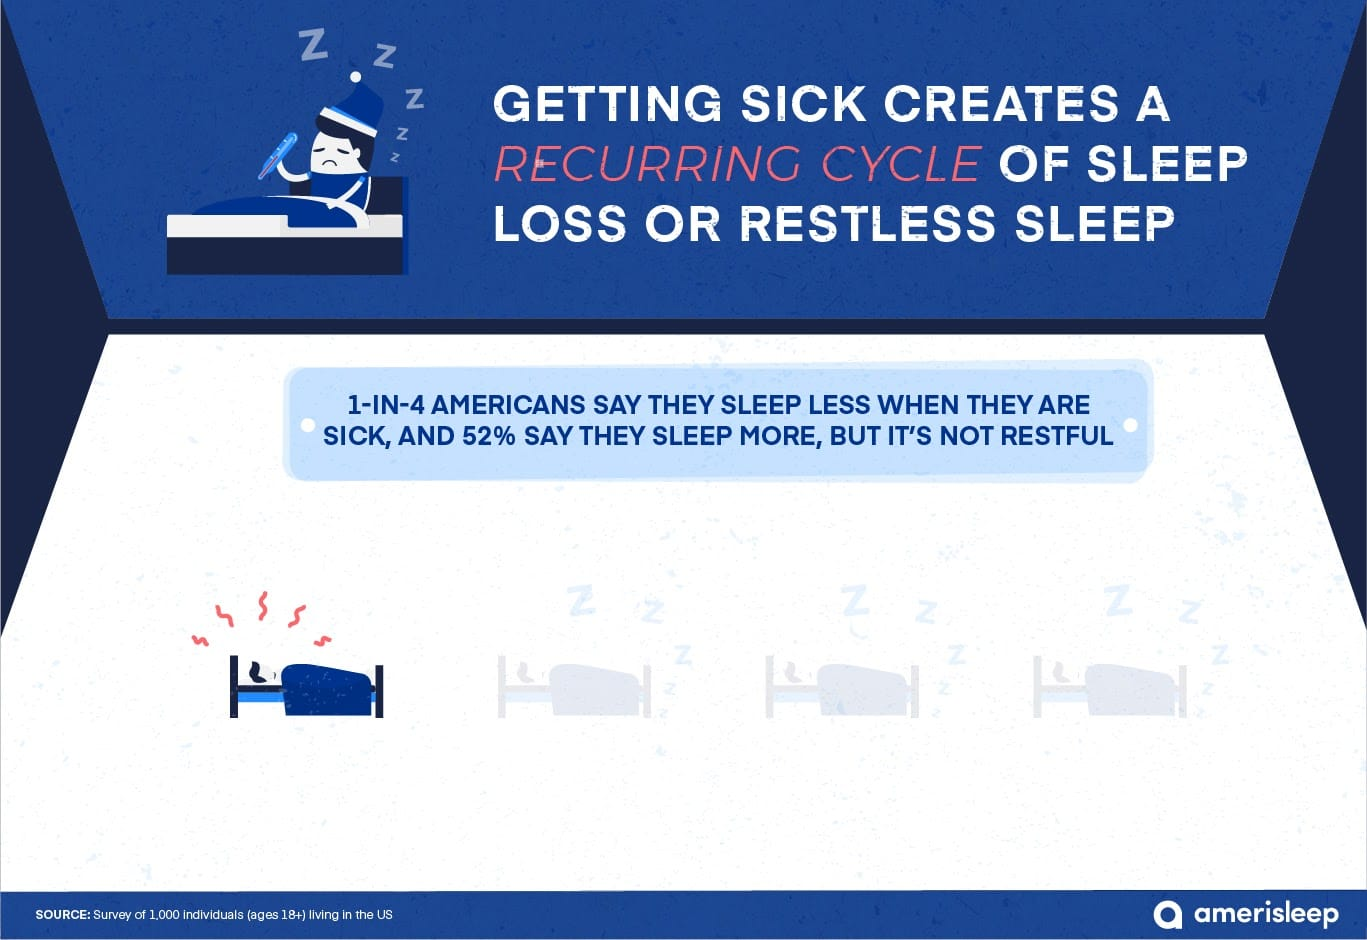 sickness and restless sleep